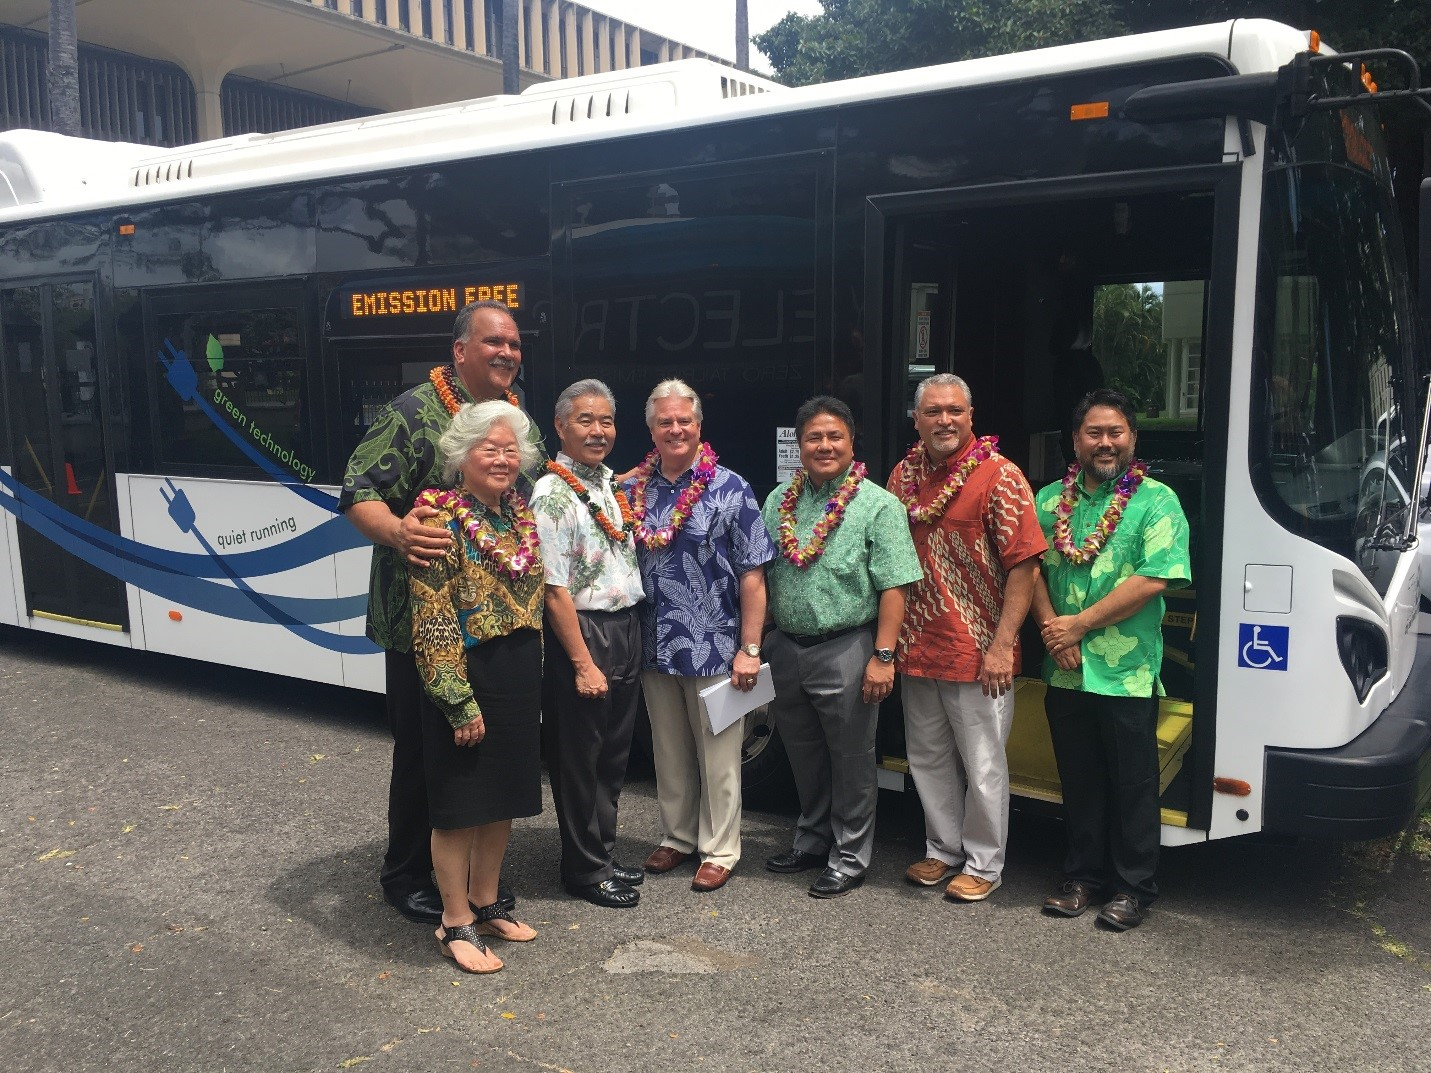 Highways Electric Bus Demonstration Showcases Sustainable Ground Transportation Future For Hawaii